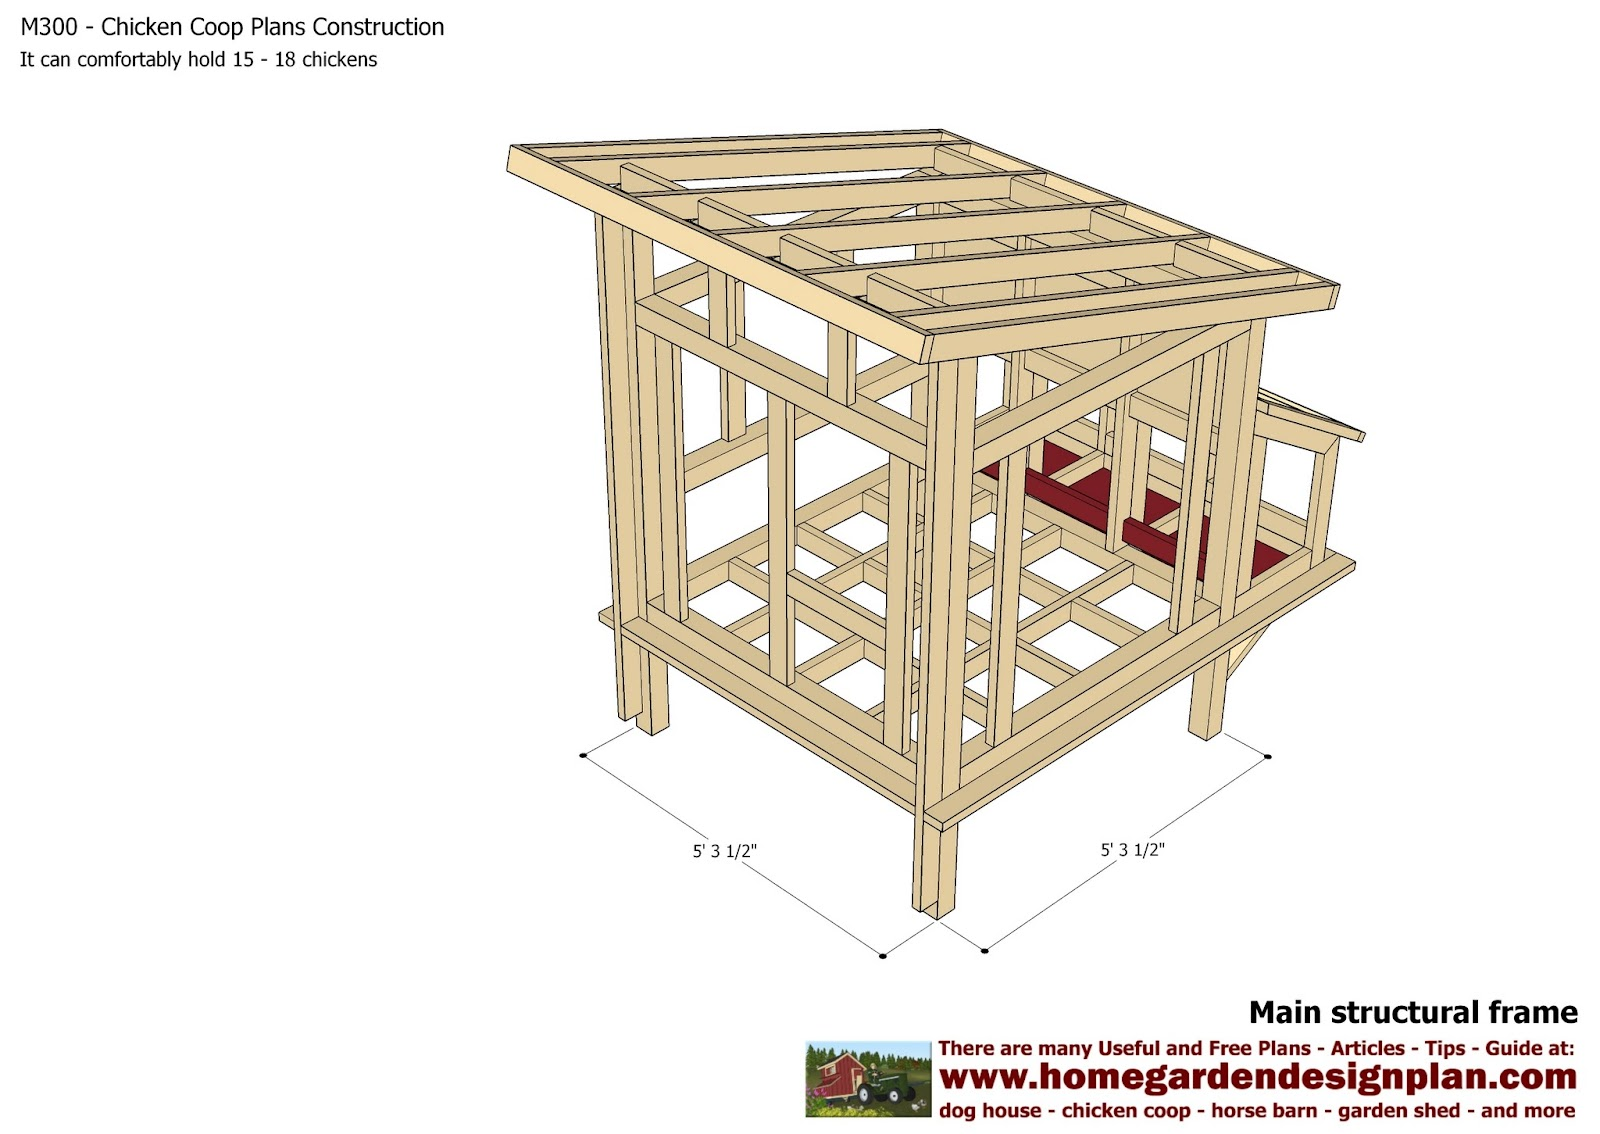 Home garden plans m300 chicken coop plans chicken for Plans for a chicken coop for 12 chickens